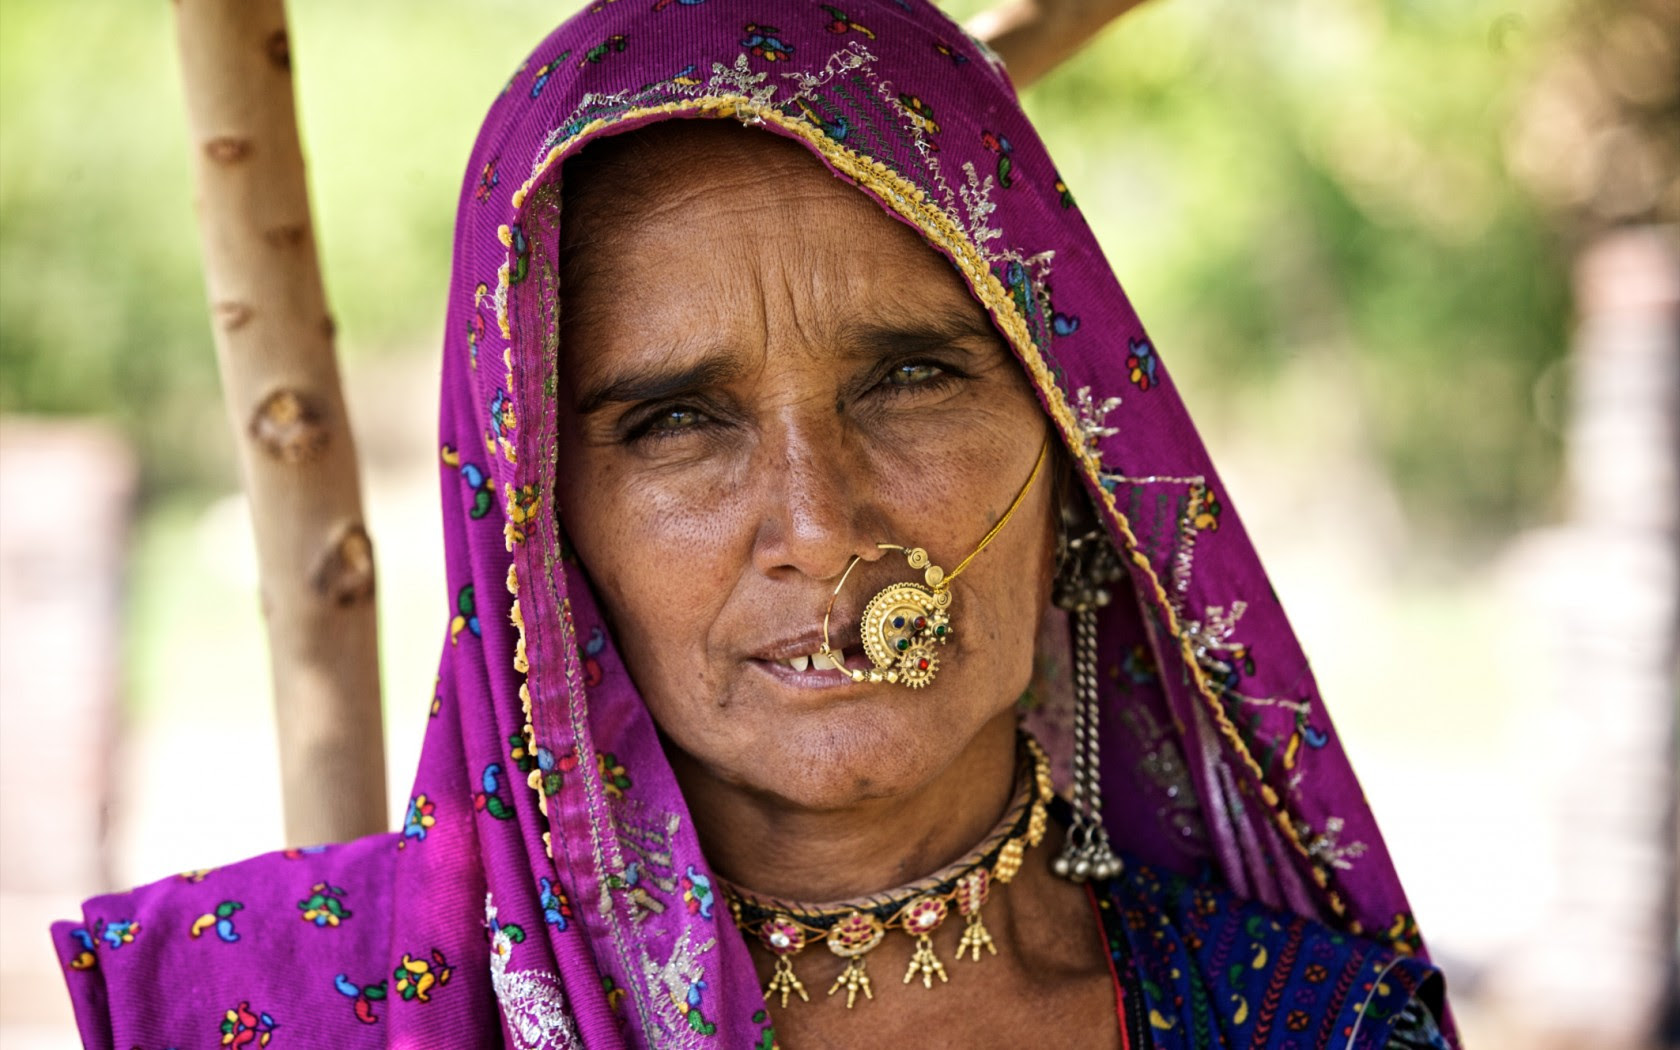 Nose Rings Not Just A Fashion Statement In India